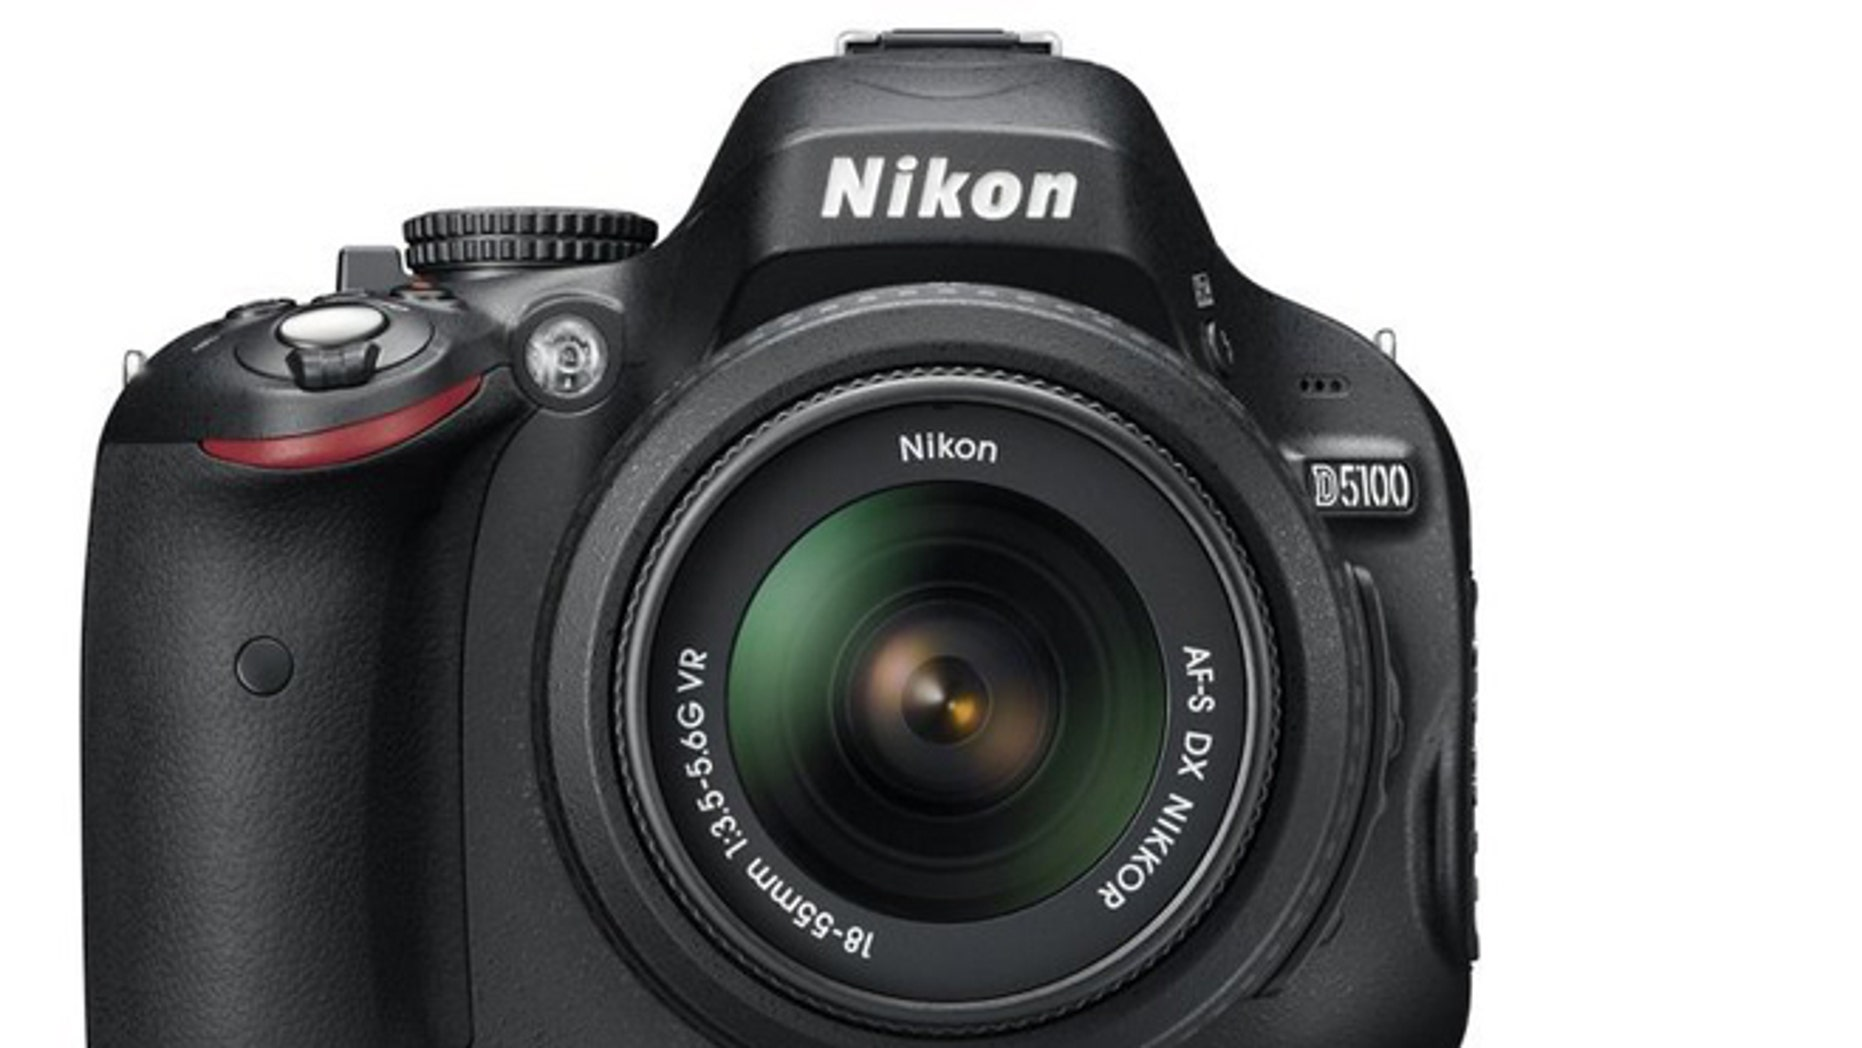 Digital SLRs are one of the product types that people are upgrading to.